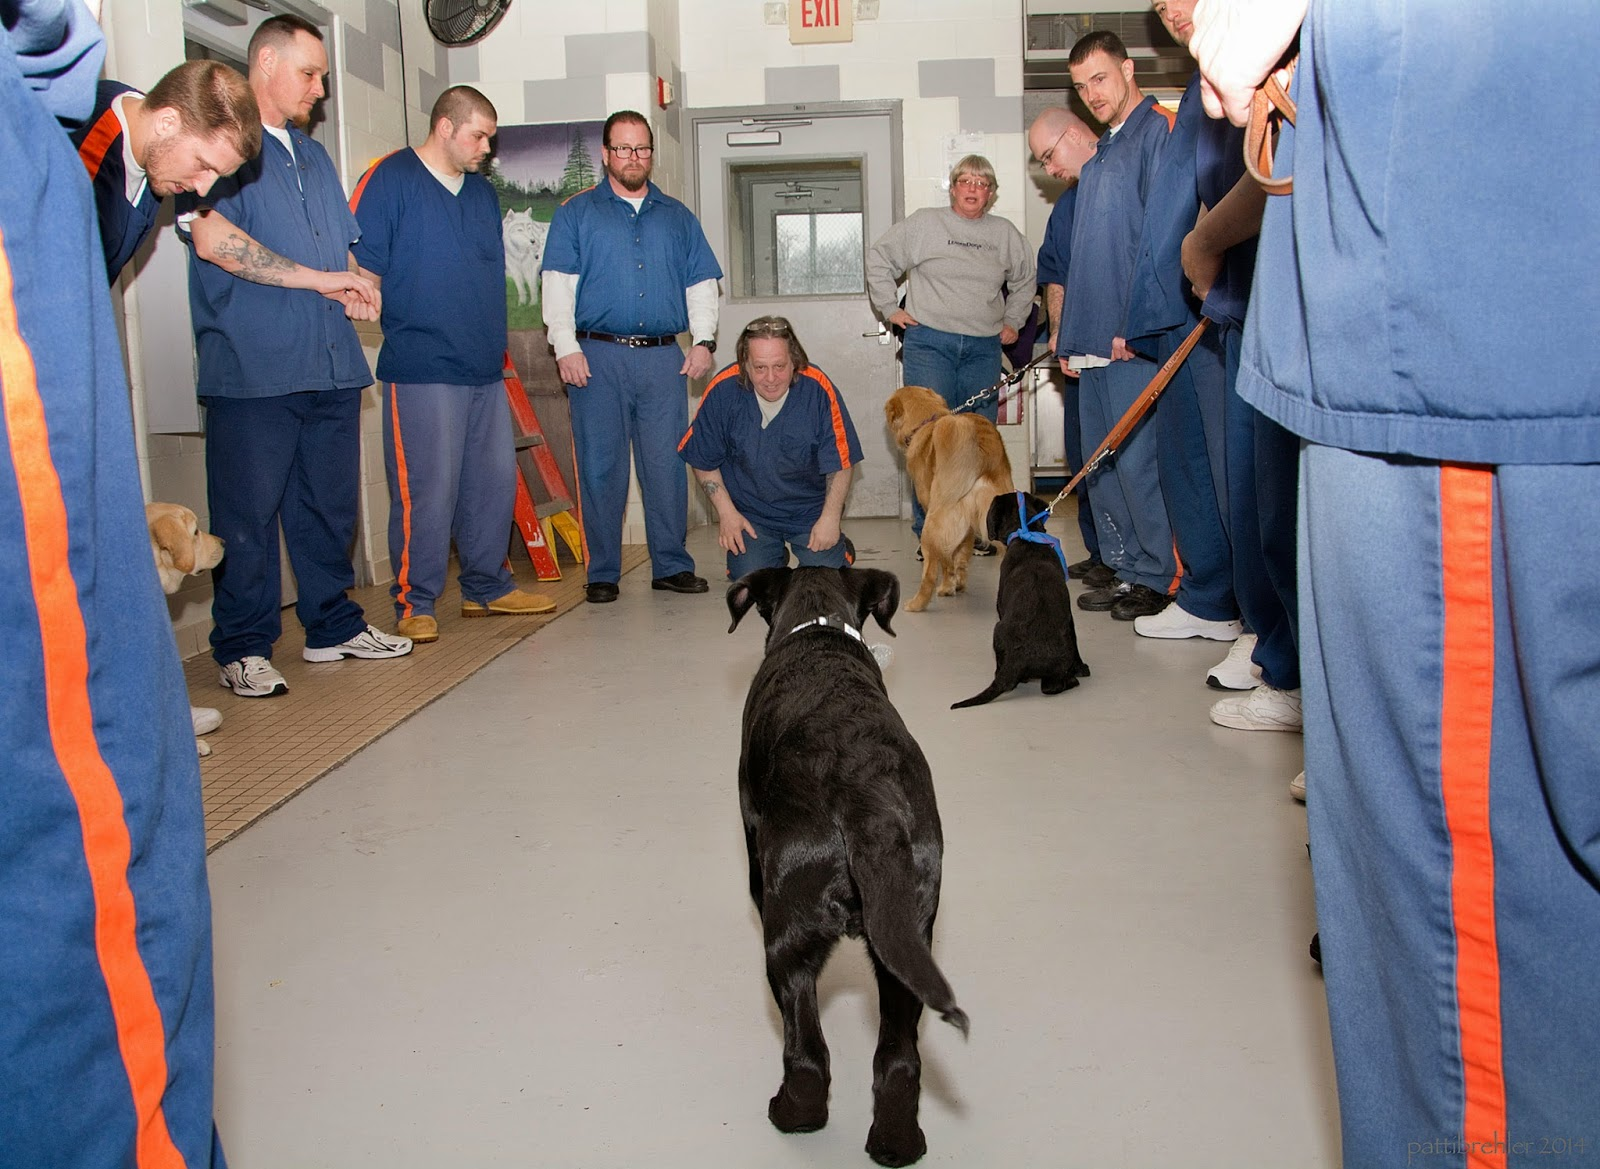 A black lab puppy is running away from the camera toward a man dressed in prison blue uniform. The man is kneeling on the cement floor with his hands on his knees, calling the puppy. There are men and one woman standing in a circle on either side of the kneeling man, the men all have the prison uniforms on and the woman is to the kneeling man's left, she is wearing a grey sweatshirt and blue jeans. There is a golden retriever facing the woman, and a smaller black lab puppy is sitting facing the kneeling man from the right.